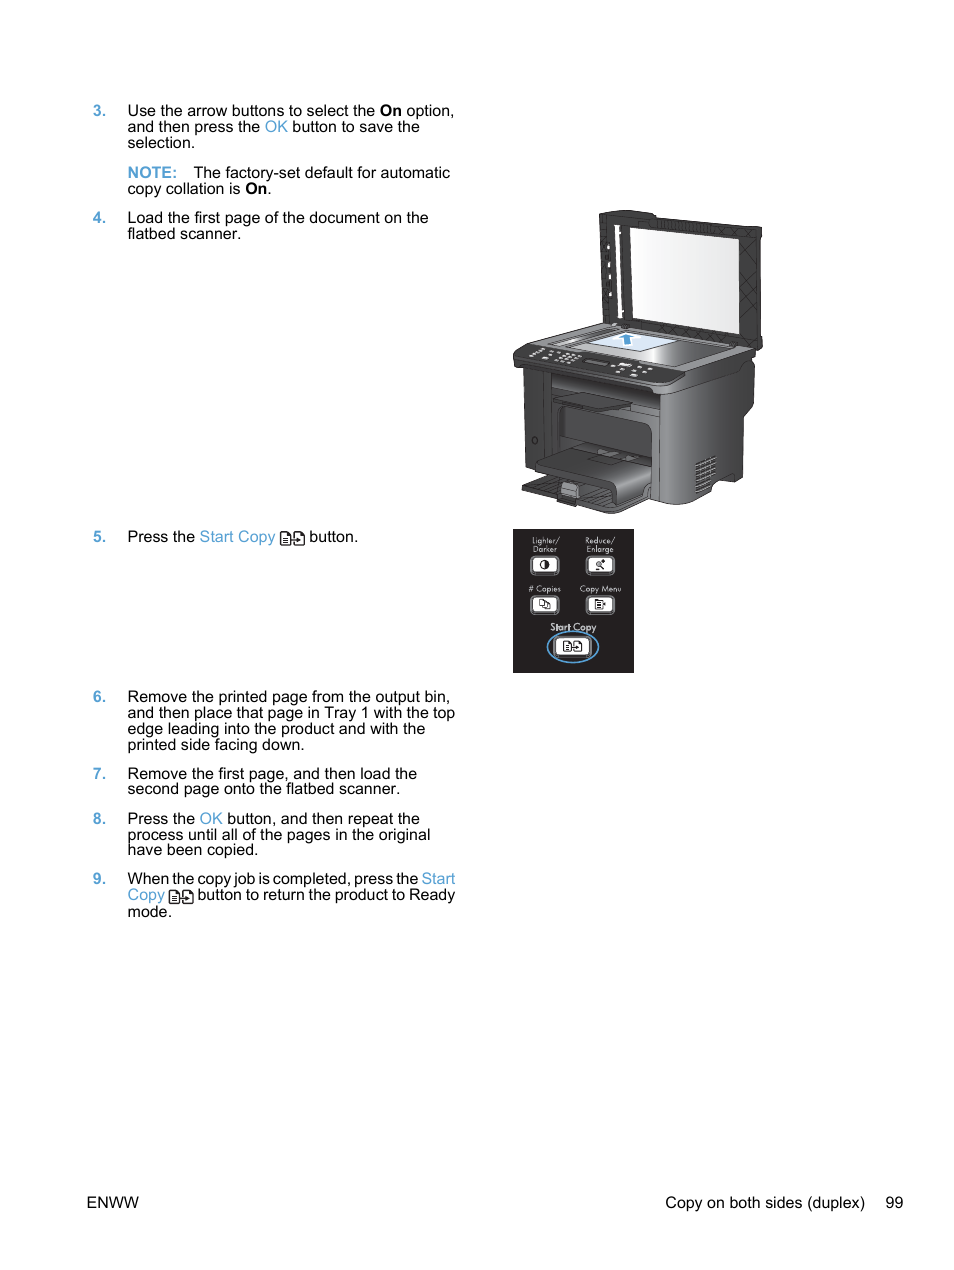 hp laserjet pro m1536dnf mfp series user manual page 113 286 rh manualsdir com manual impresora hp laserjet pro m1530 mfp hp laserjet pro m1530 instruction manual